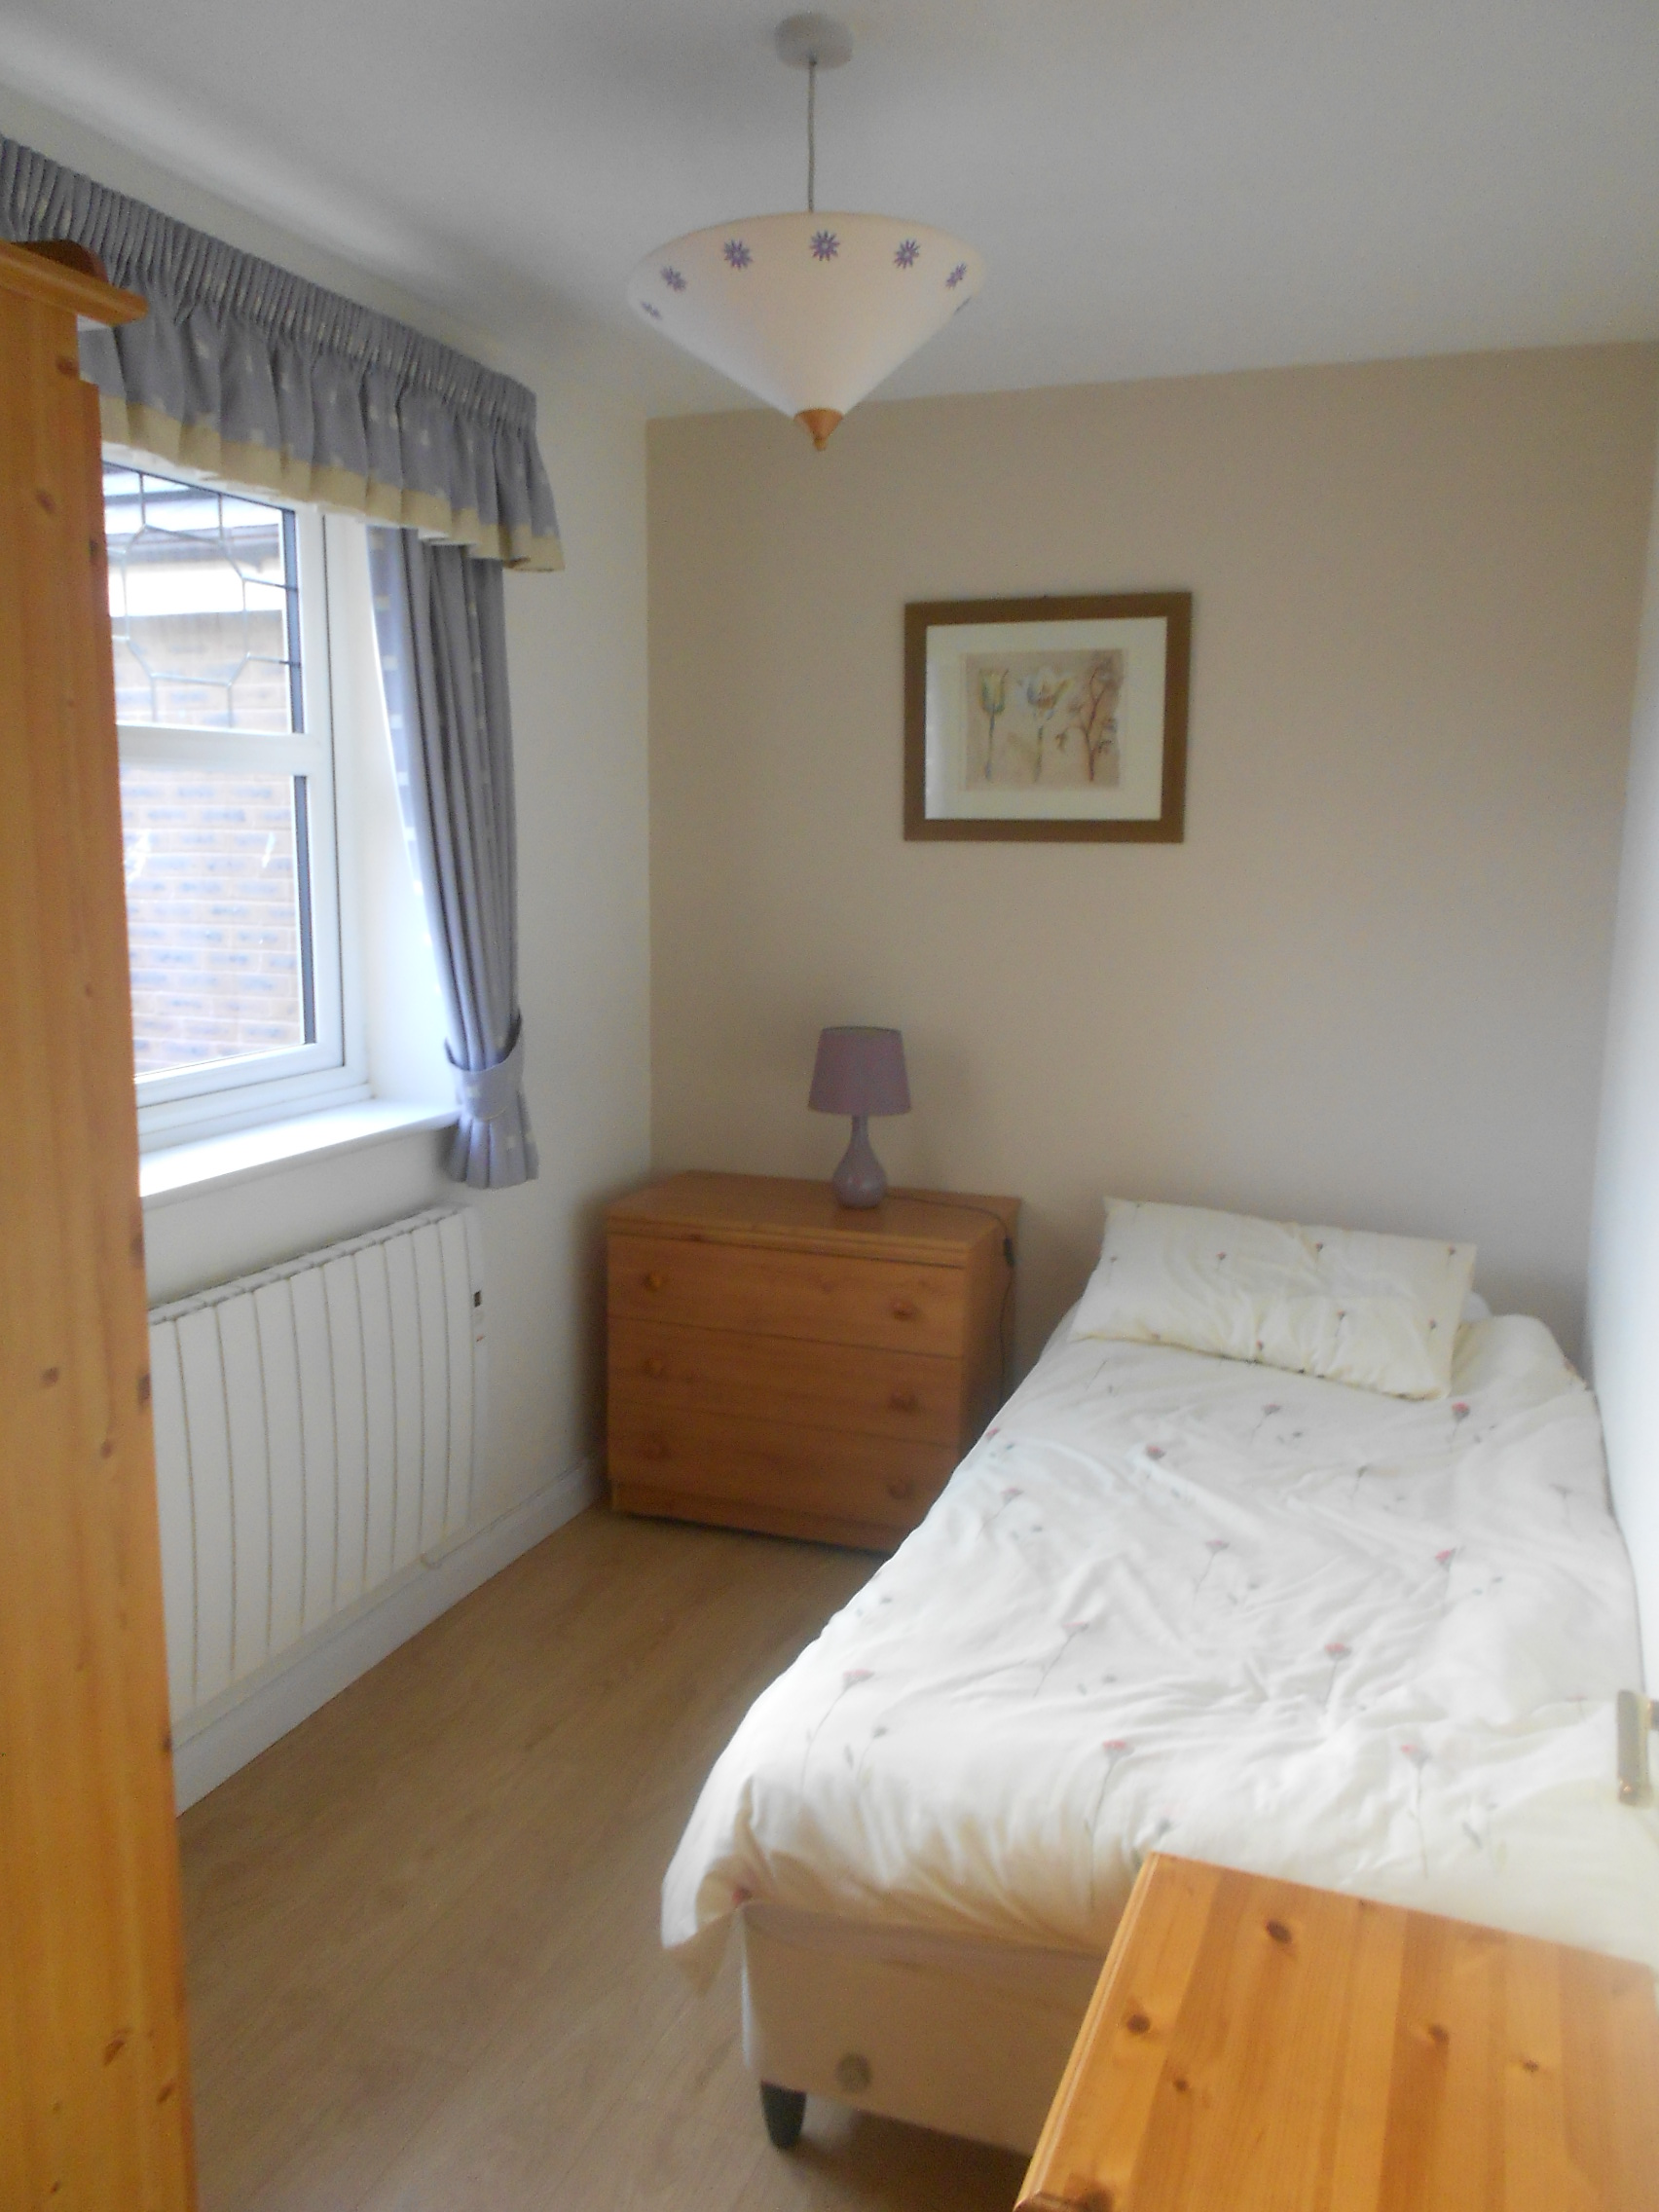 2 Bedroom Accessible Terraced House For Sale Sambourne Drive Birmingham B34 7jf